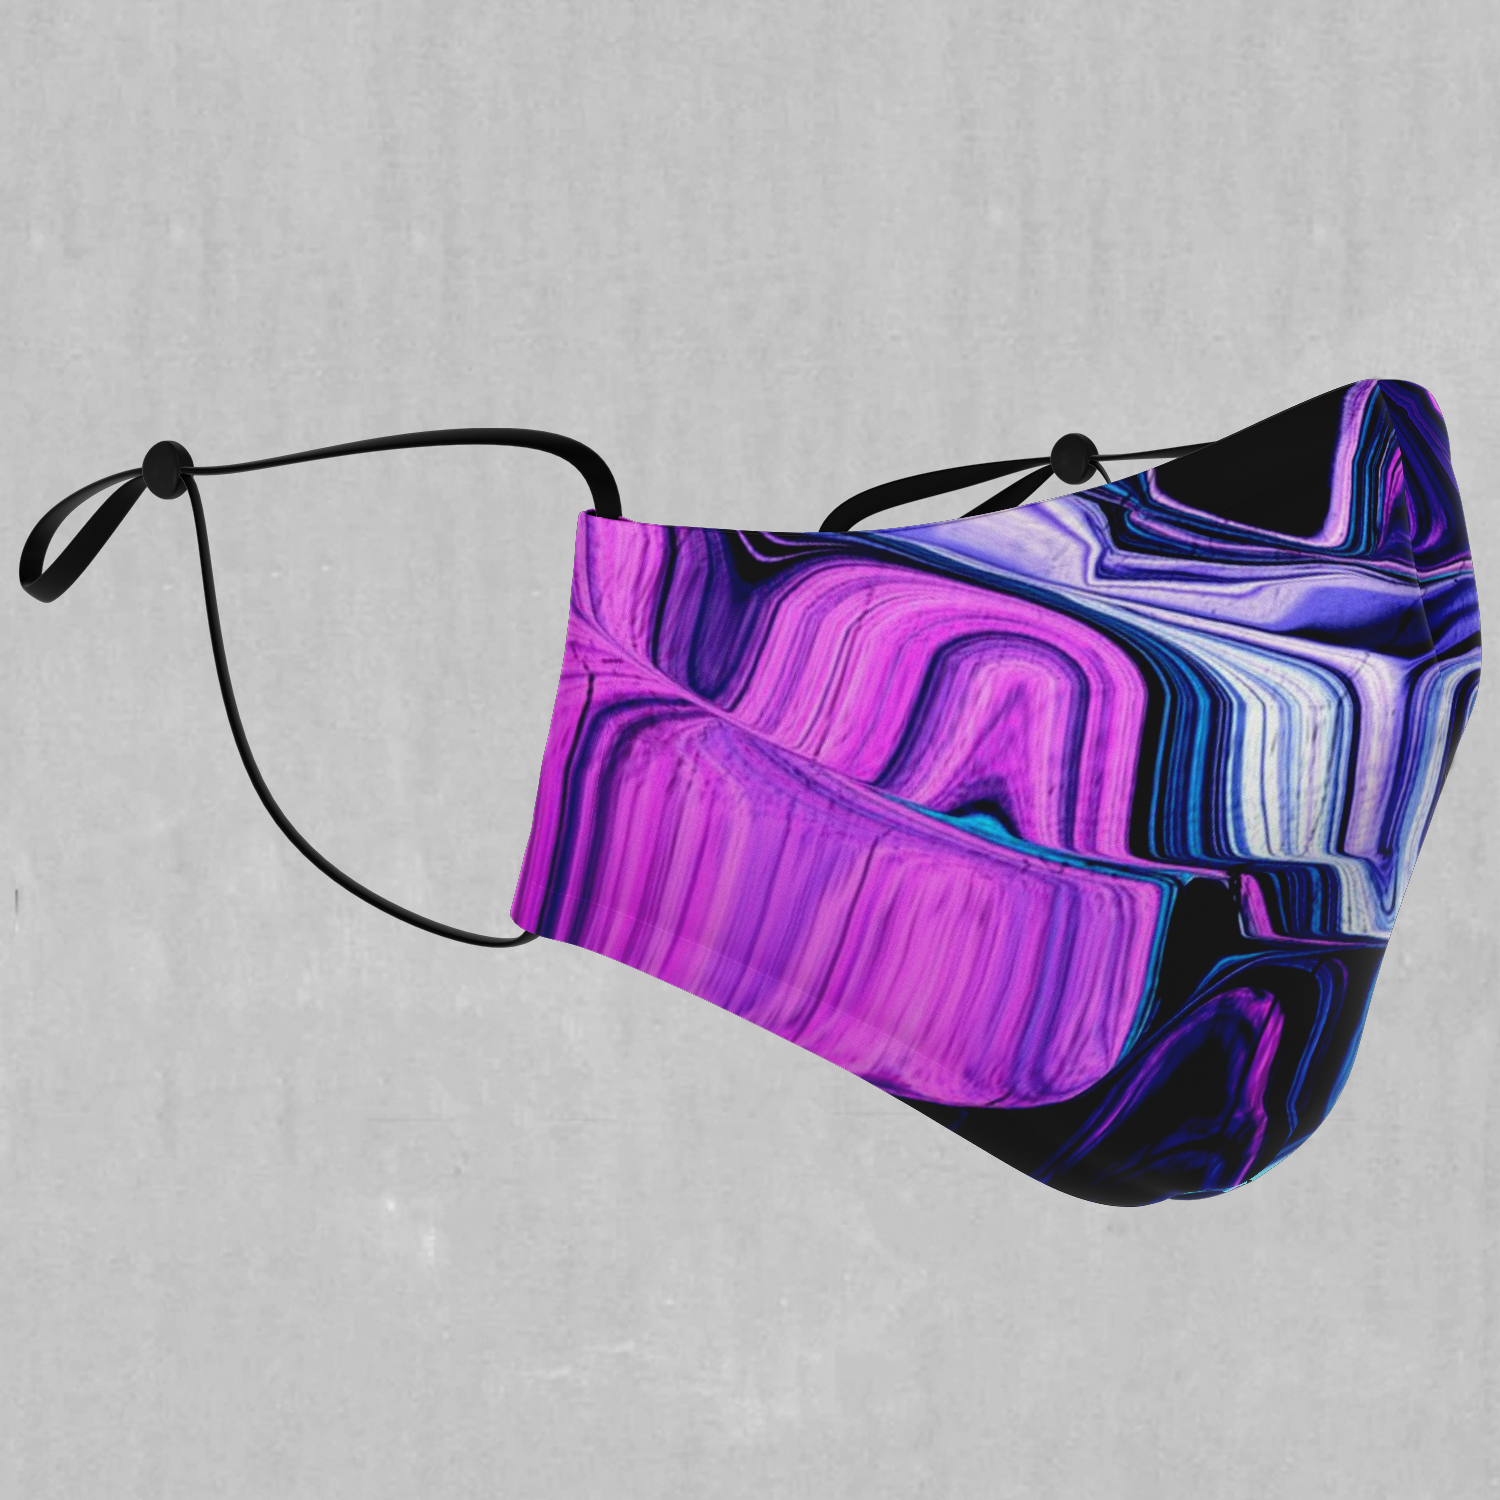 Liquid Amethyst Face Mask - EDM Rave Festival Street Wear Abstract Apparel